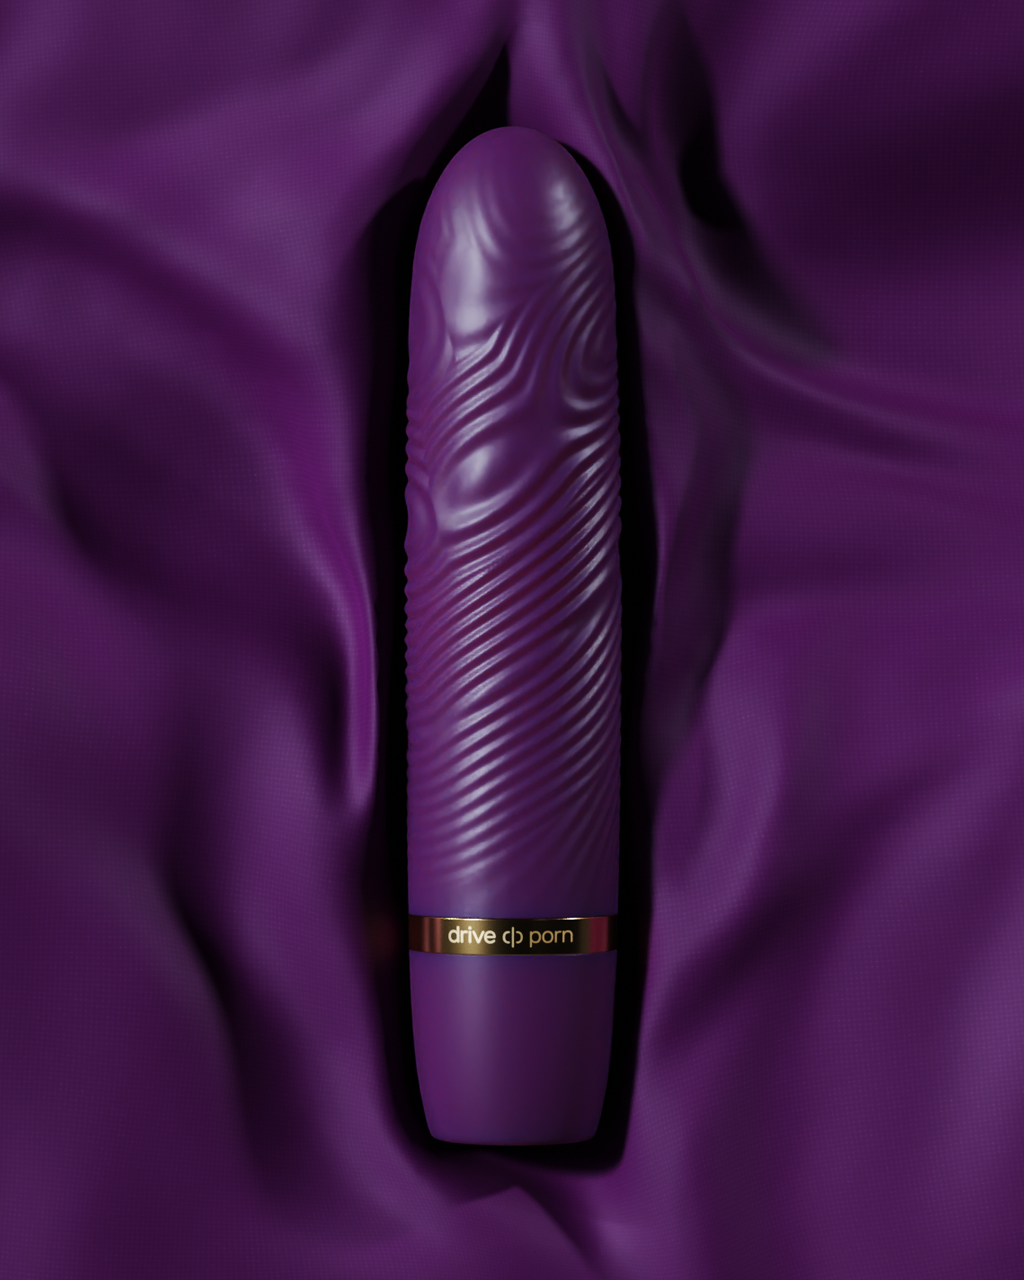 black adult toy with golden text lying on purple fabric